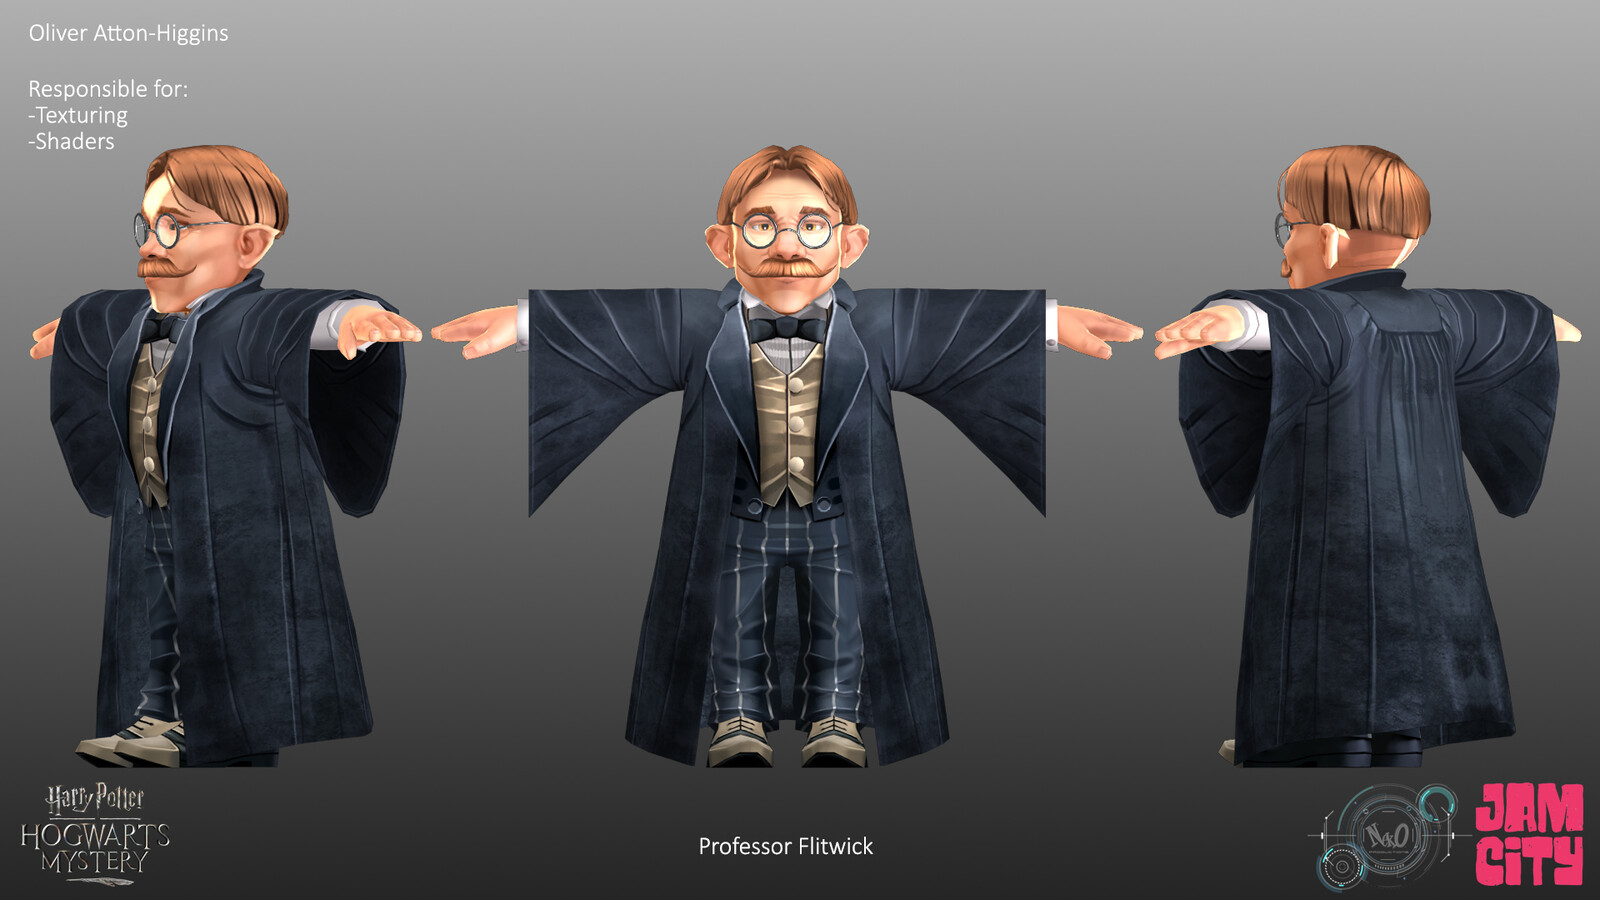 © 2018 Warner. All rights reserved. © 2018 JamCity®. All rights reserved. Harry Potter: Hogwarts Mystery © developed by JamCity®